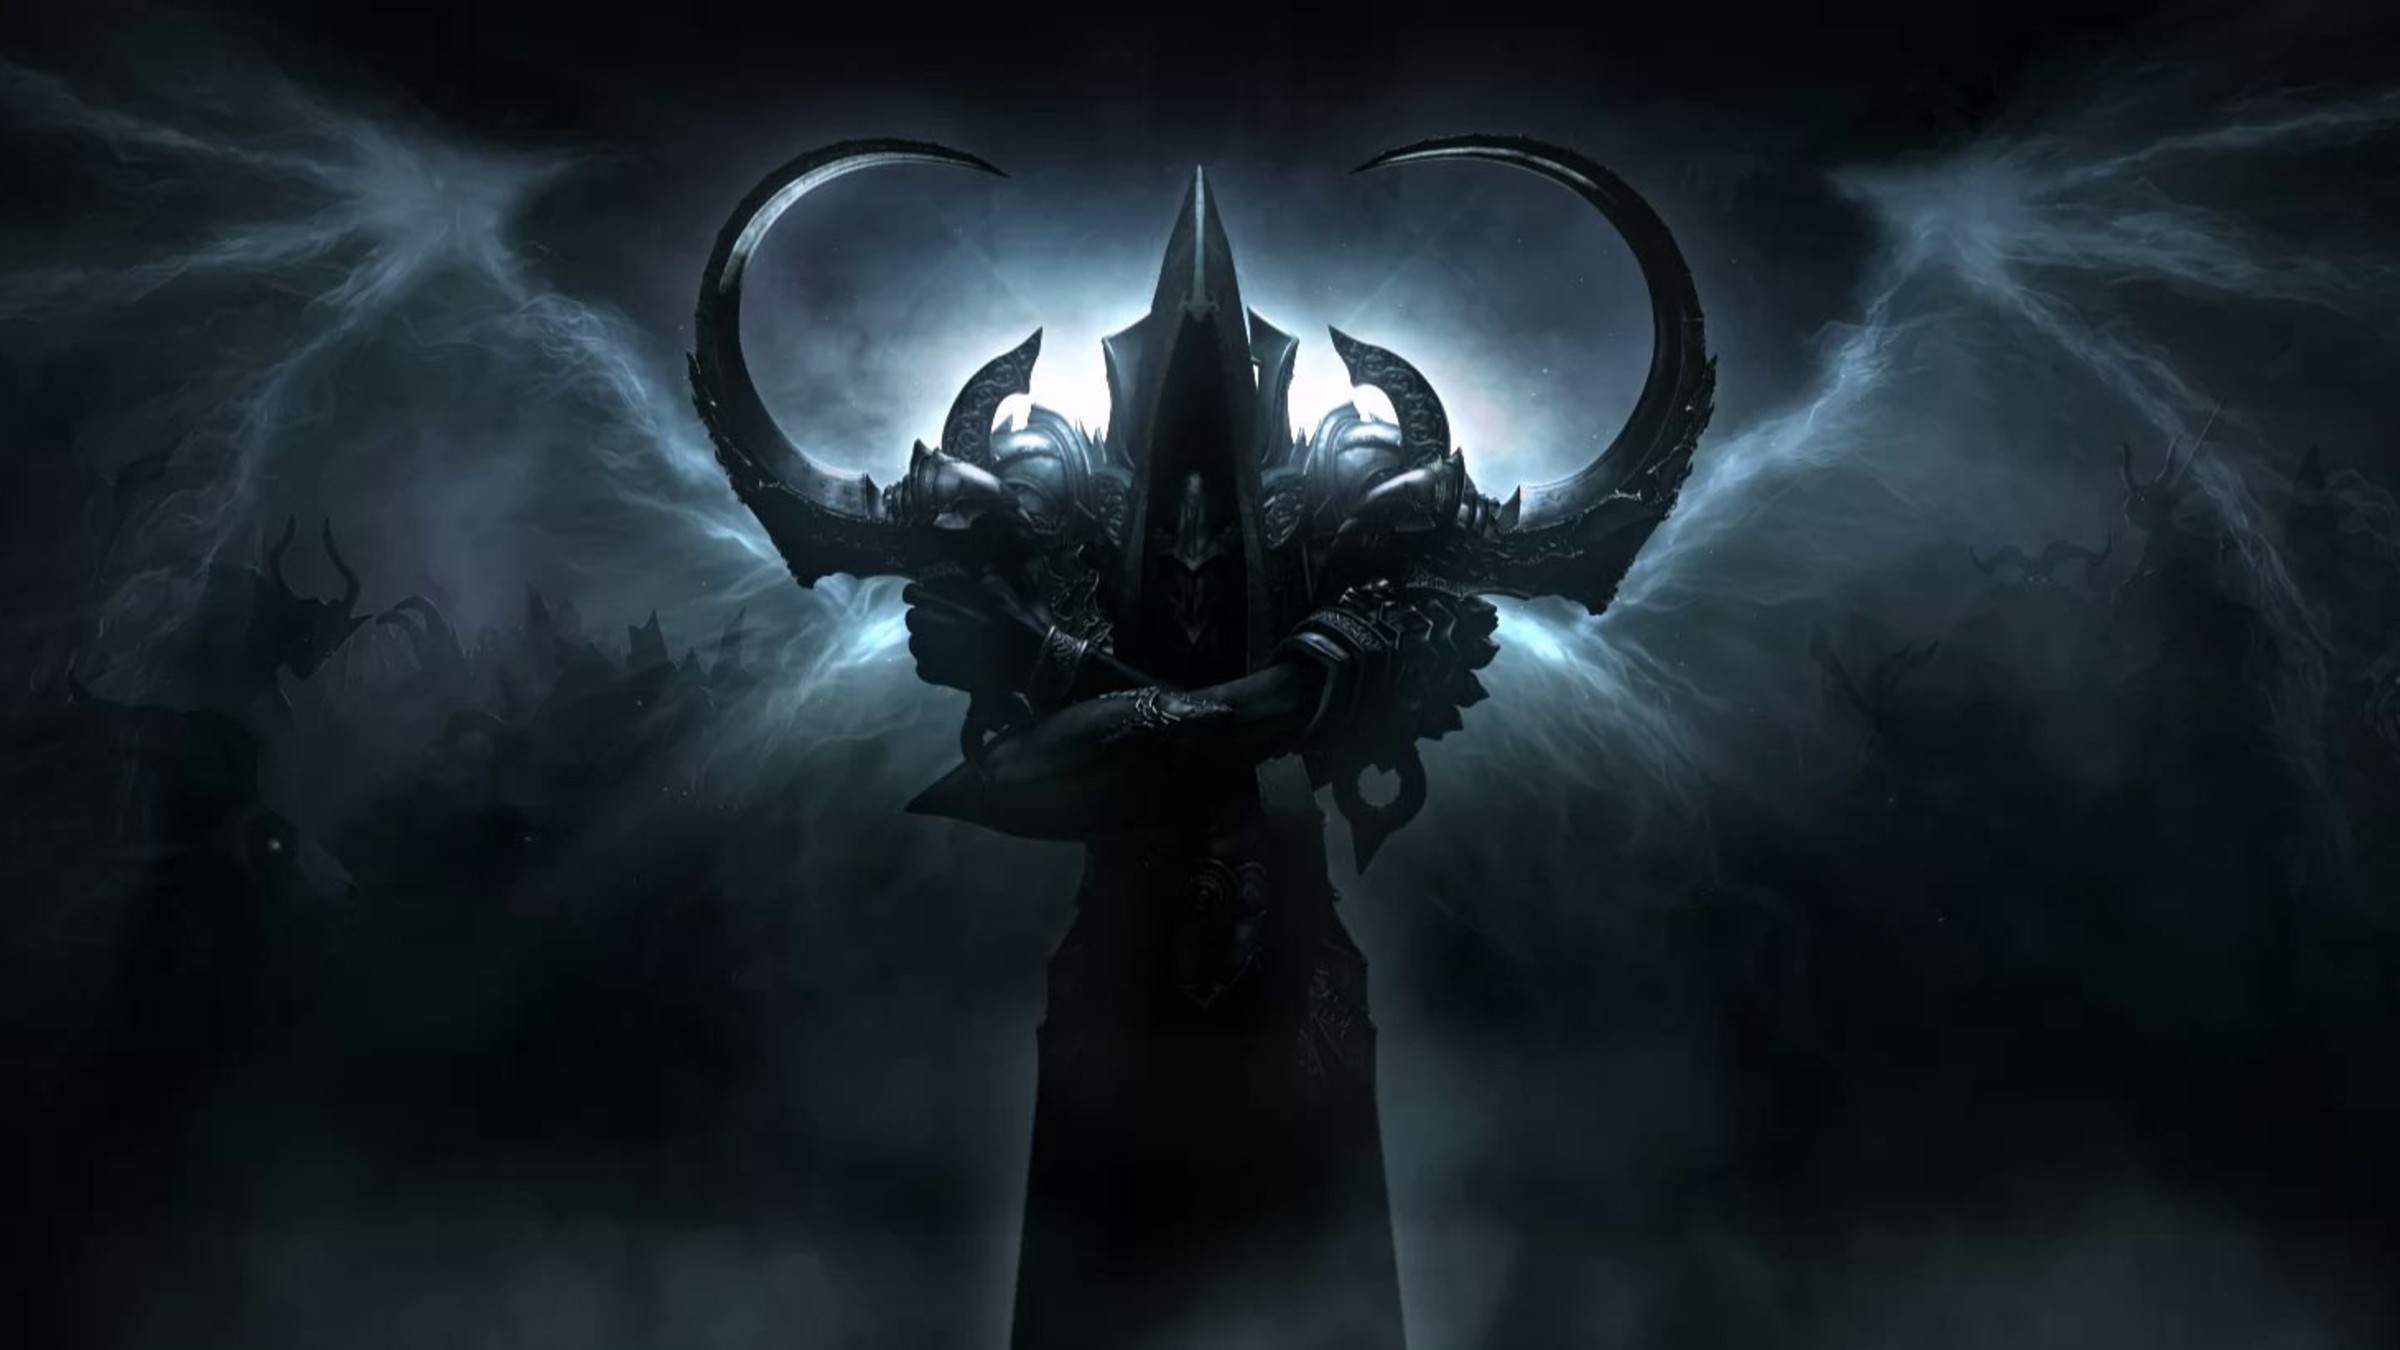 Diablo iii malthael reaper of souls wallpaper ...